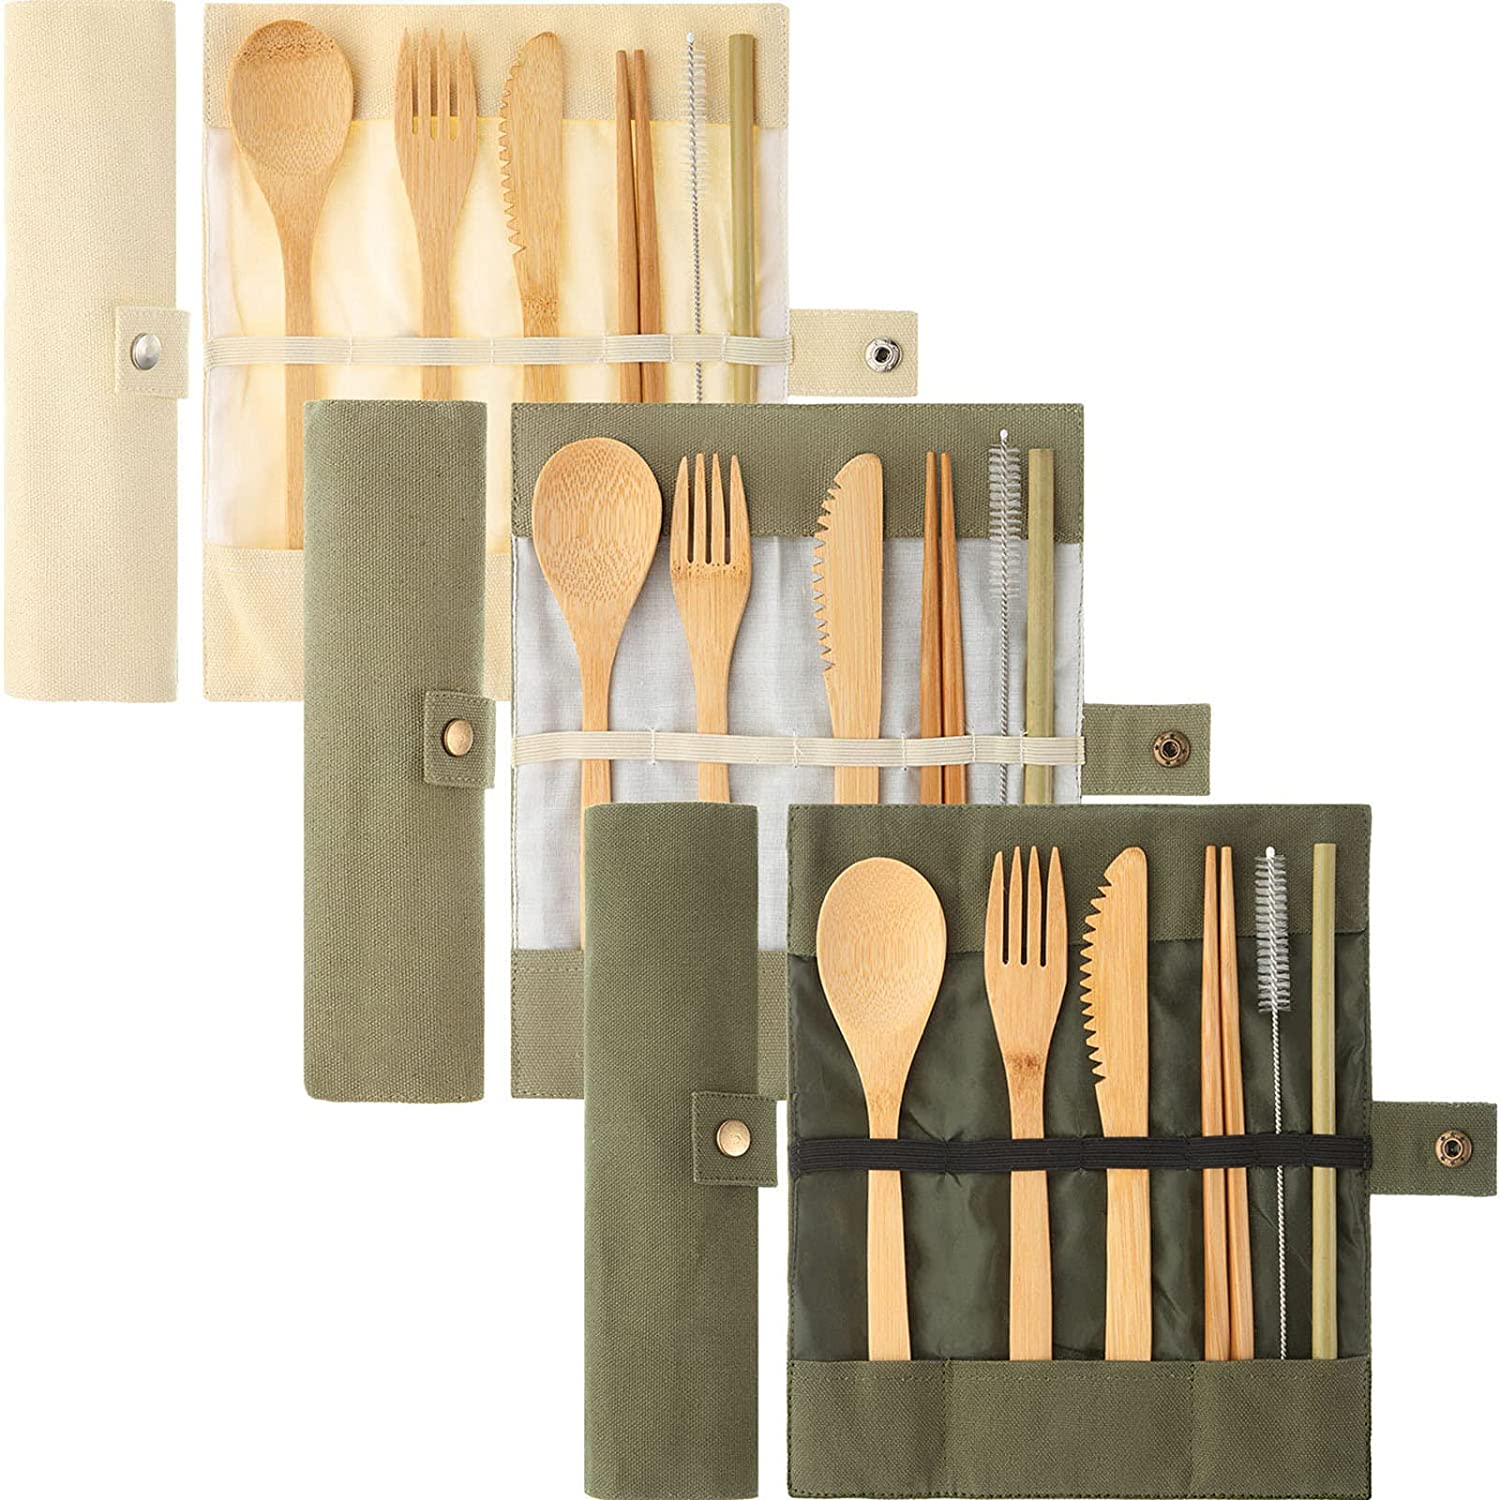 3 Set Bamboo Cutlery Set, Reusable Bamboo Utensil Include Knife, Fork, Spoon, Chopsticks, Reusable Straw for Travel Picnic Office School (White, Light Green and Dark Green)